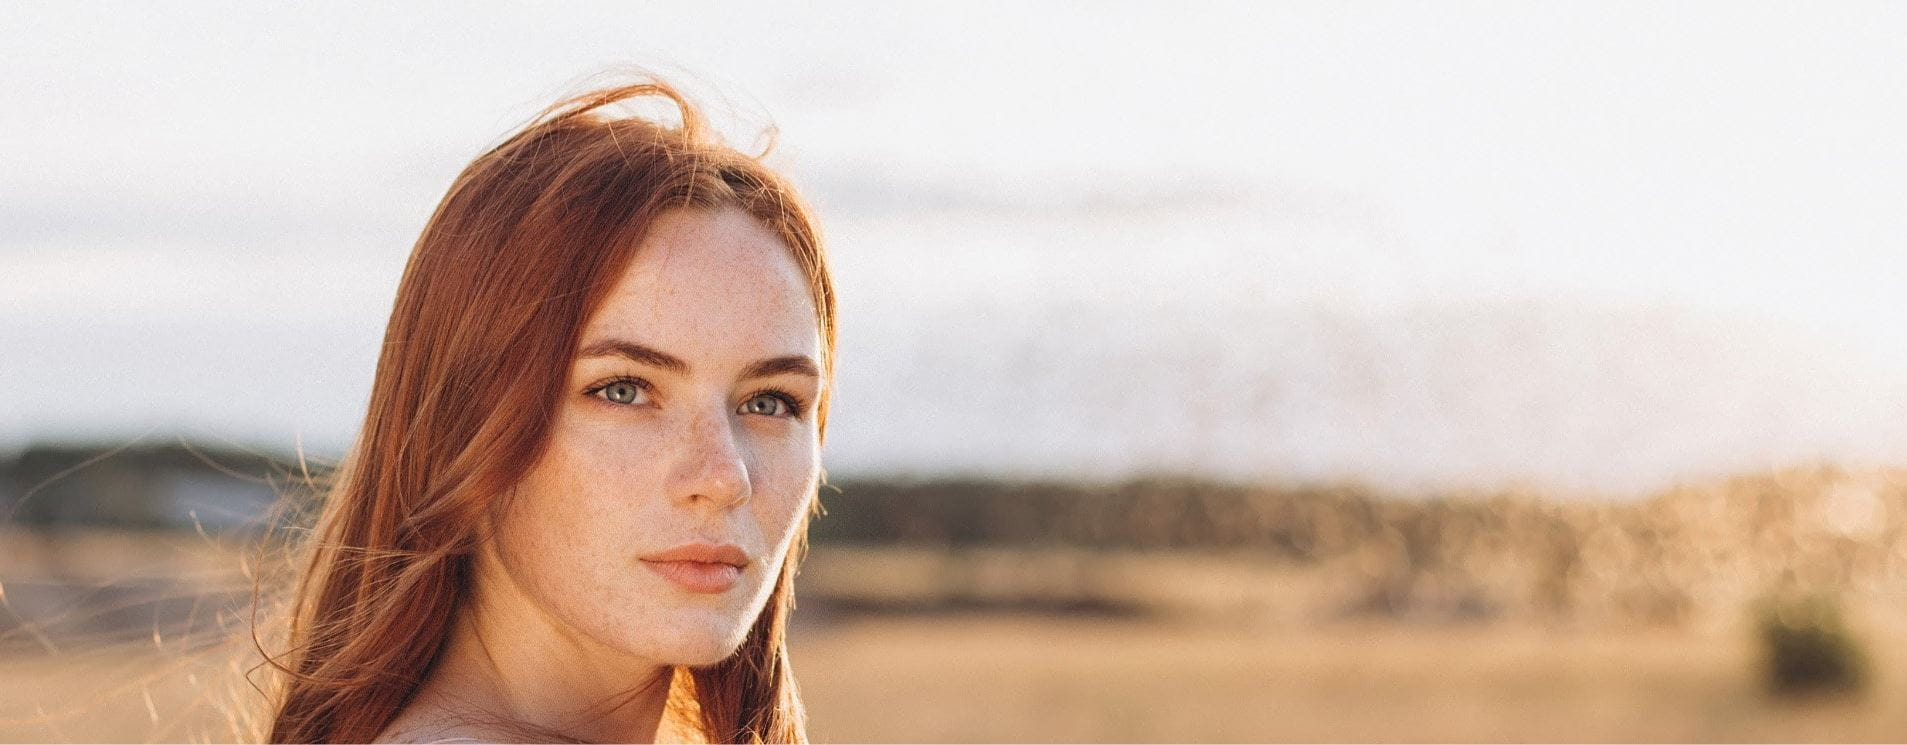 benefits of face masks girl with ginger hair in a field